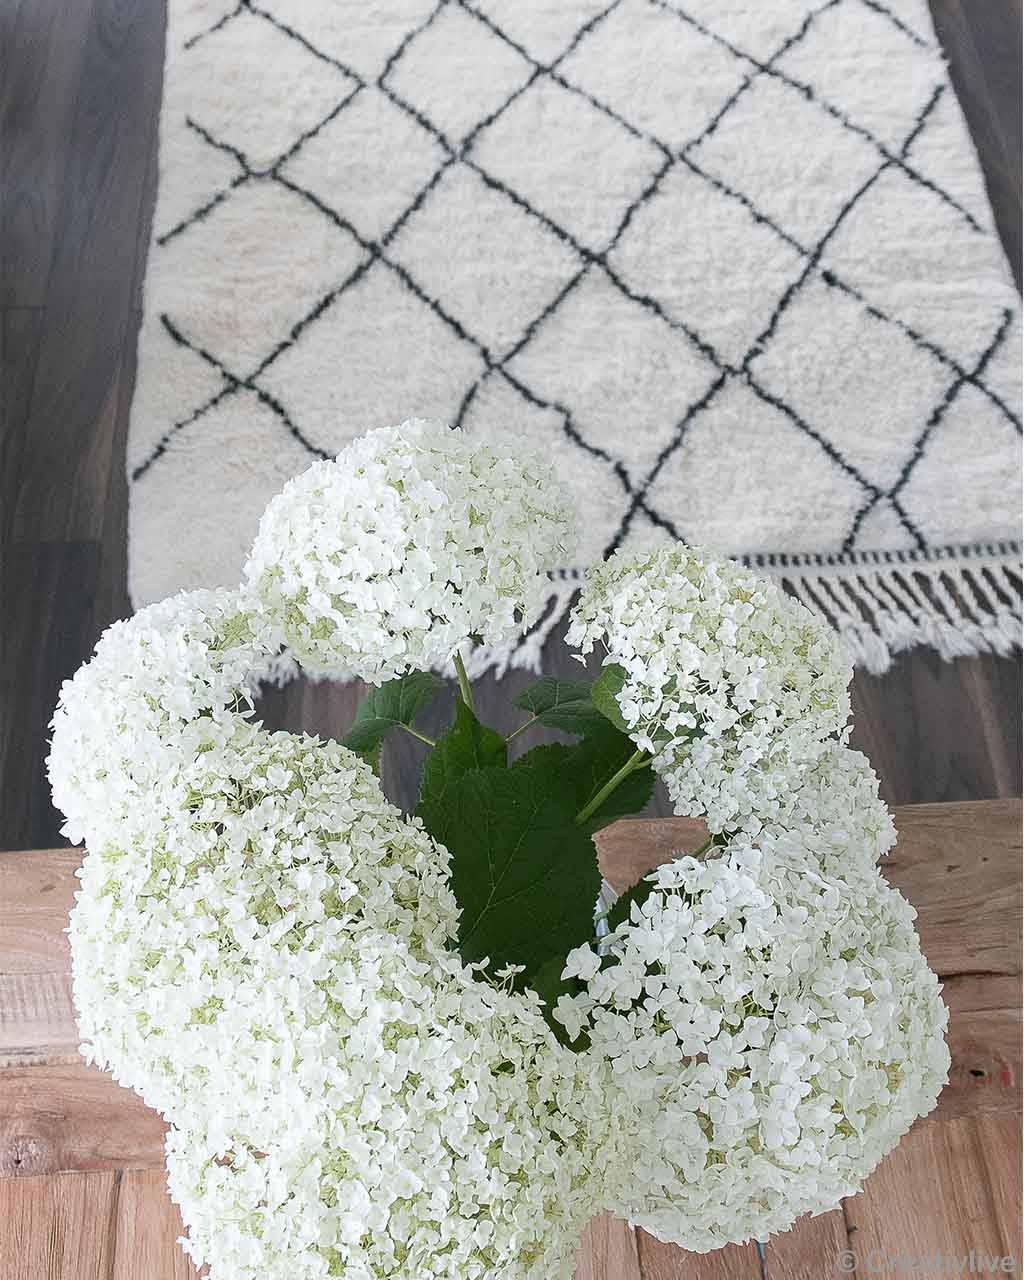 plant with white flowers morocco designer beni ourain area rug